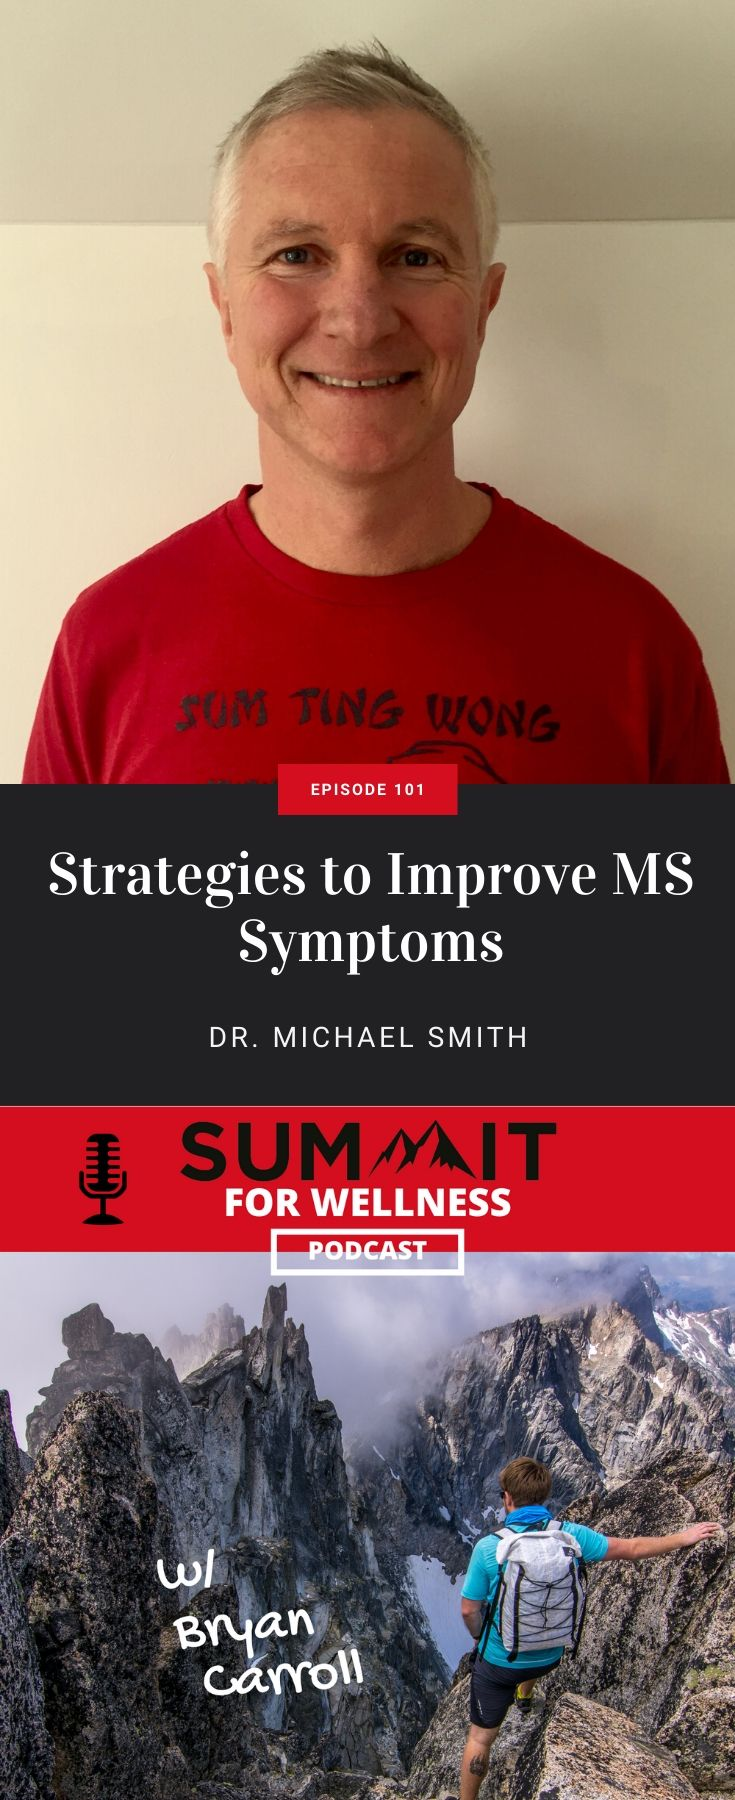 Learn from Dr. Michael Smith on how to improve MS symptoms